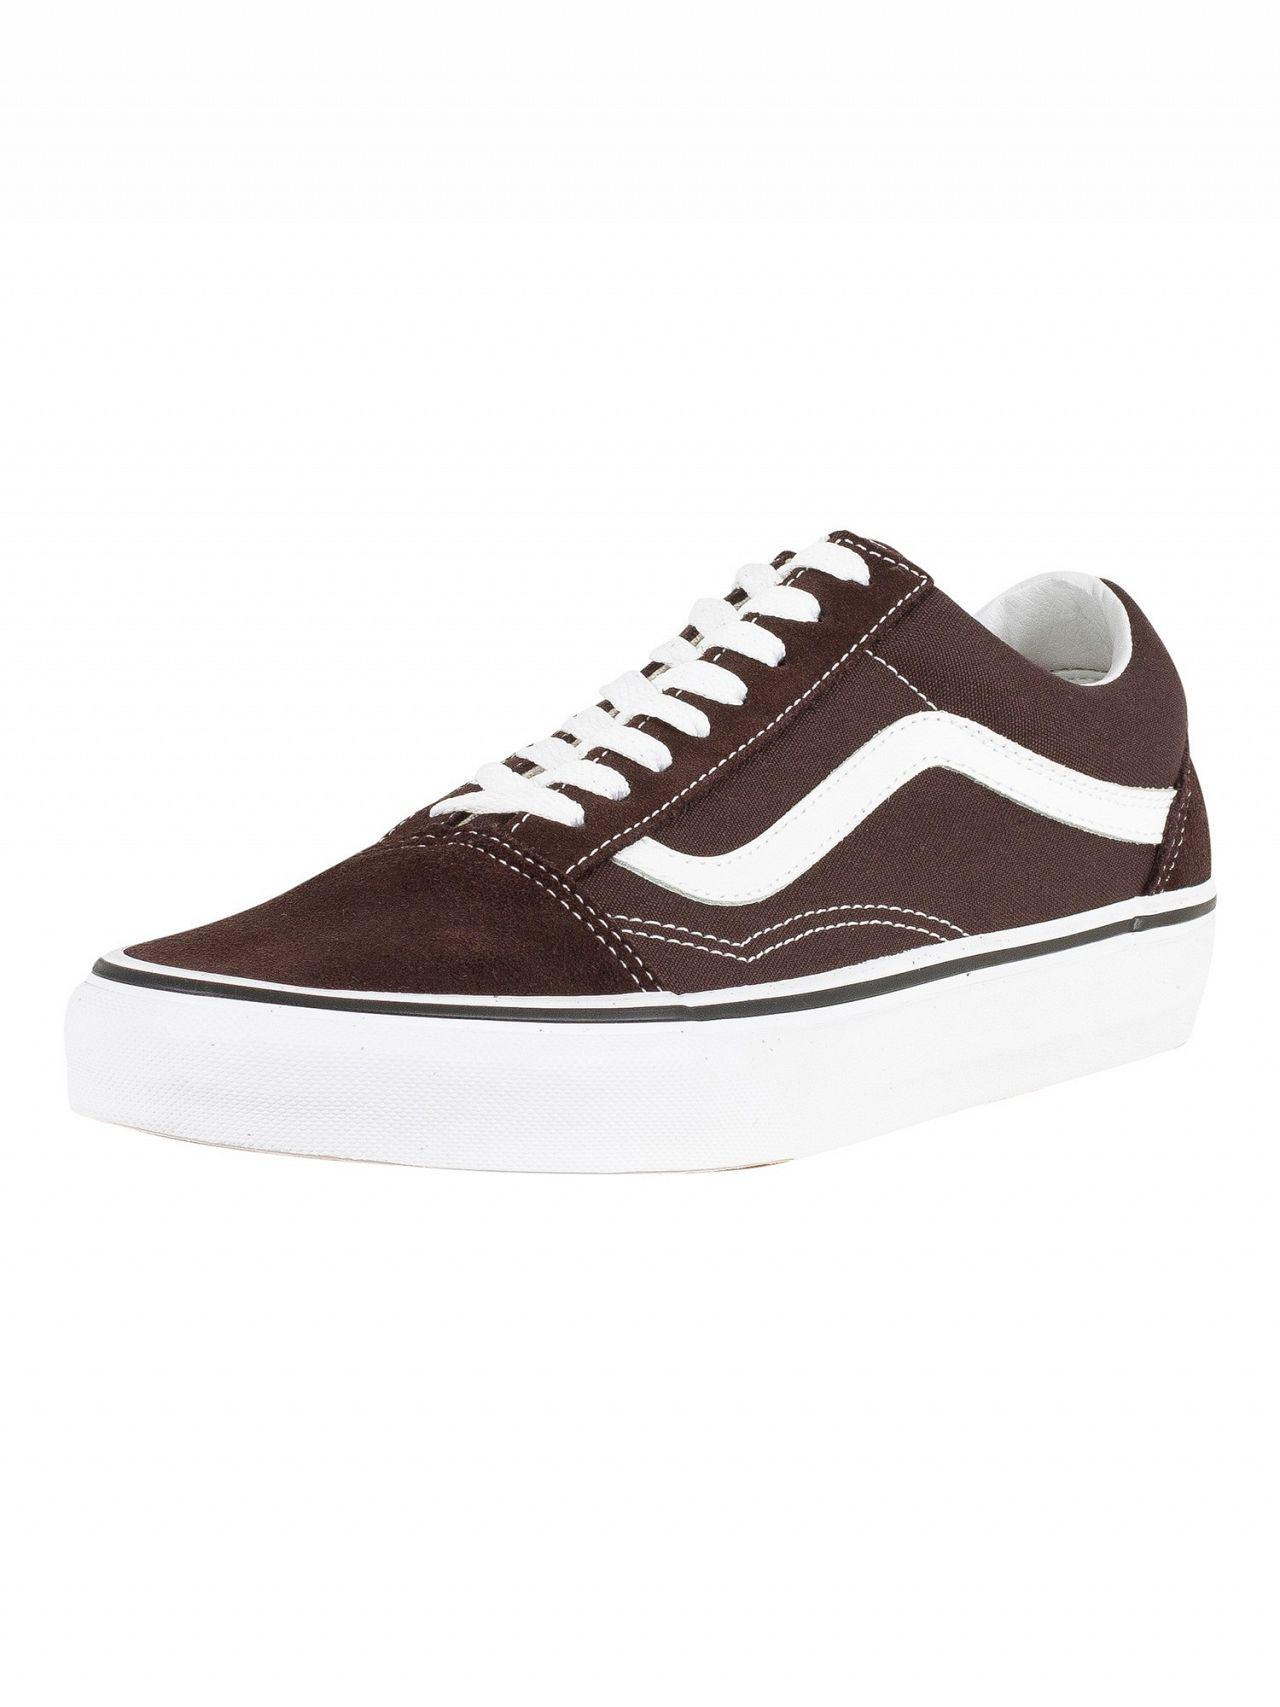 Lyst - Vans Chocolate Torte true White Old Skool Trainers in Brown ... 4bf219a4b